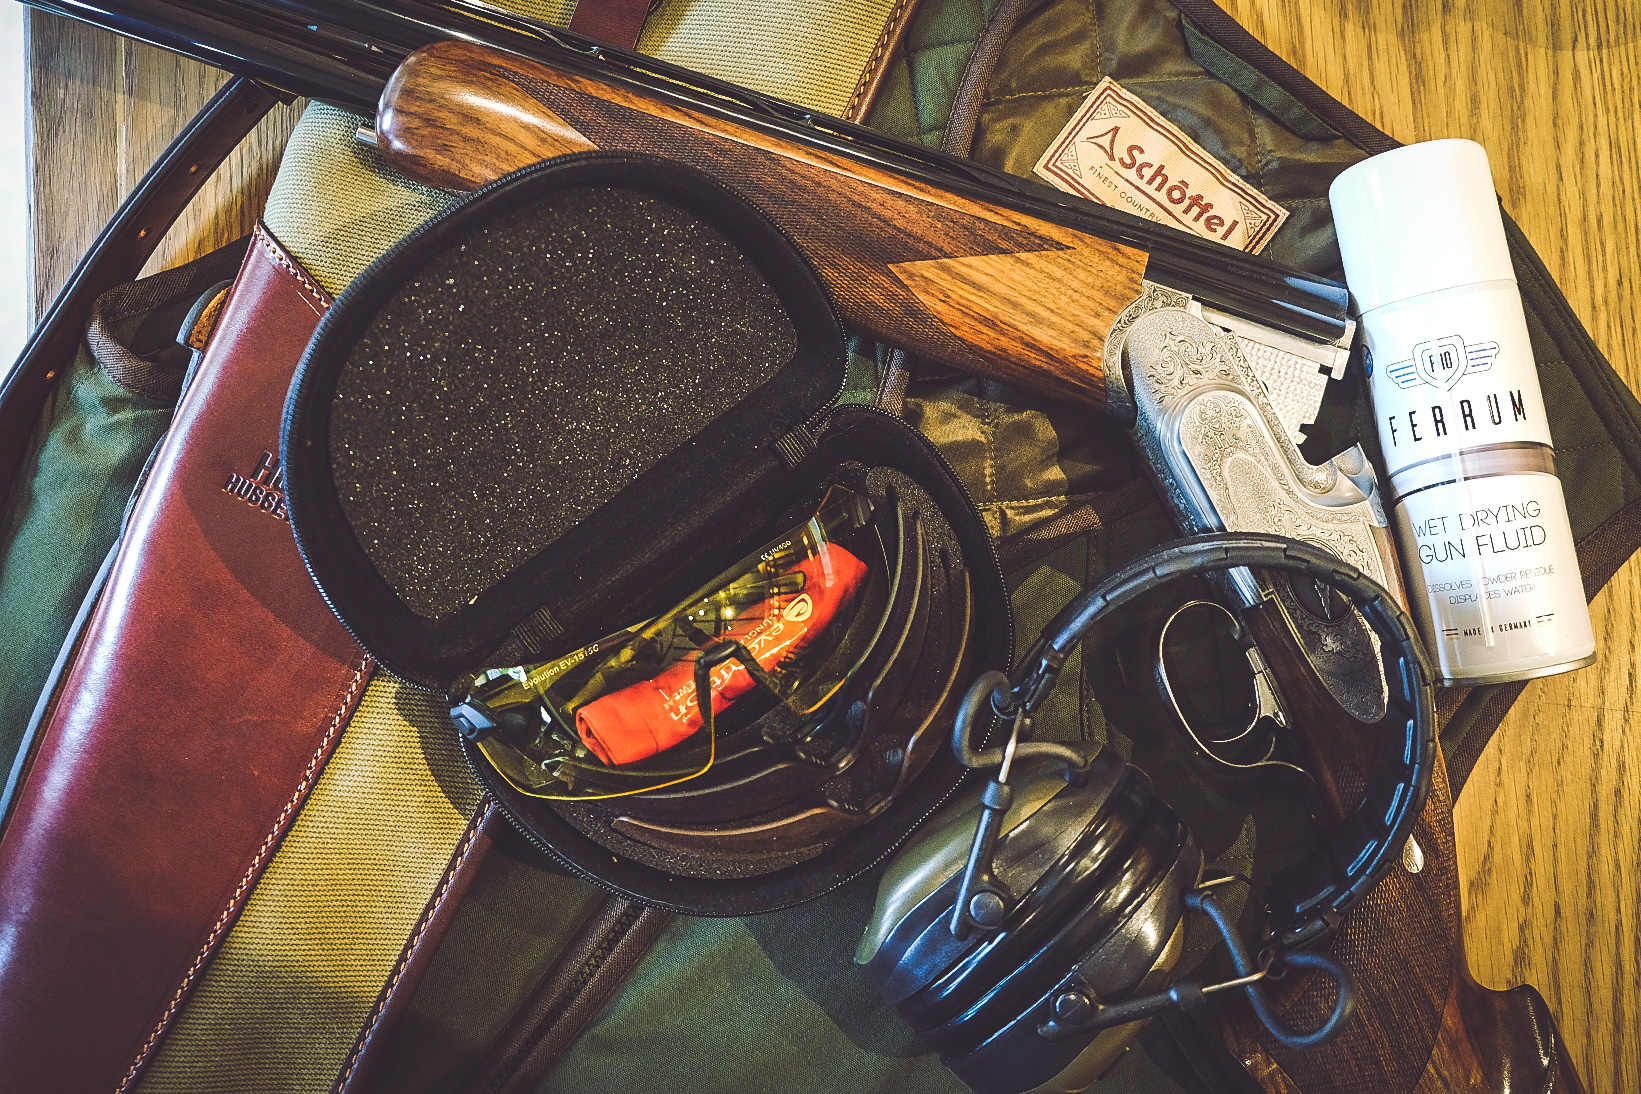 Beginner's Shooting Equipment Starter Kit